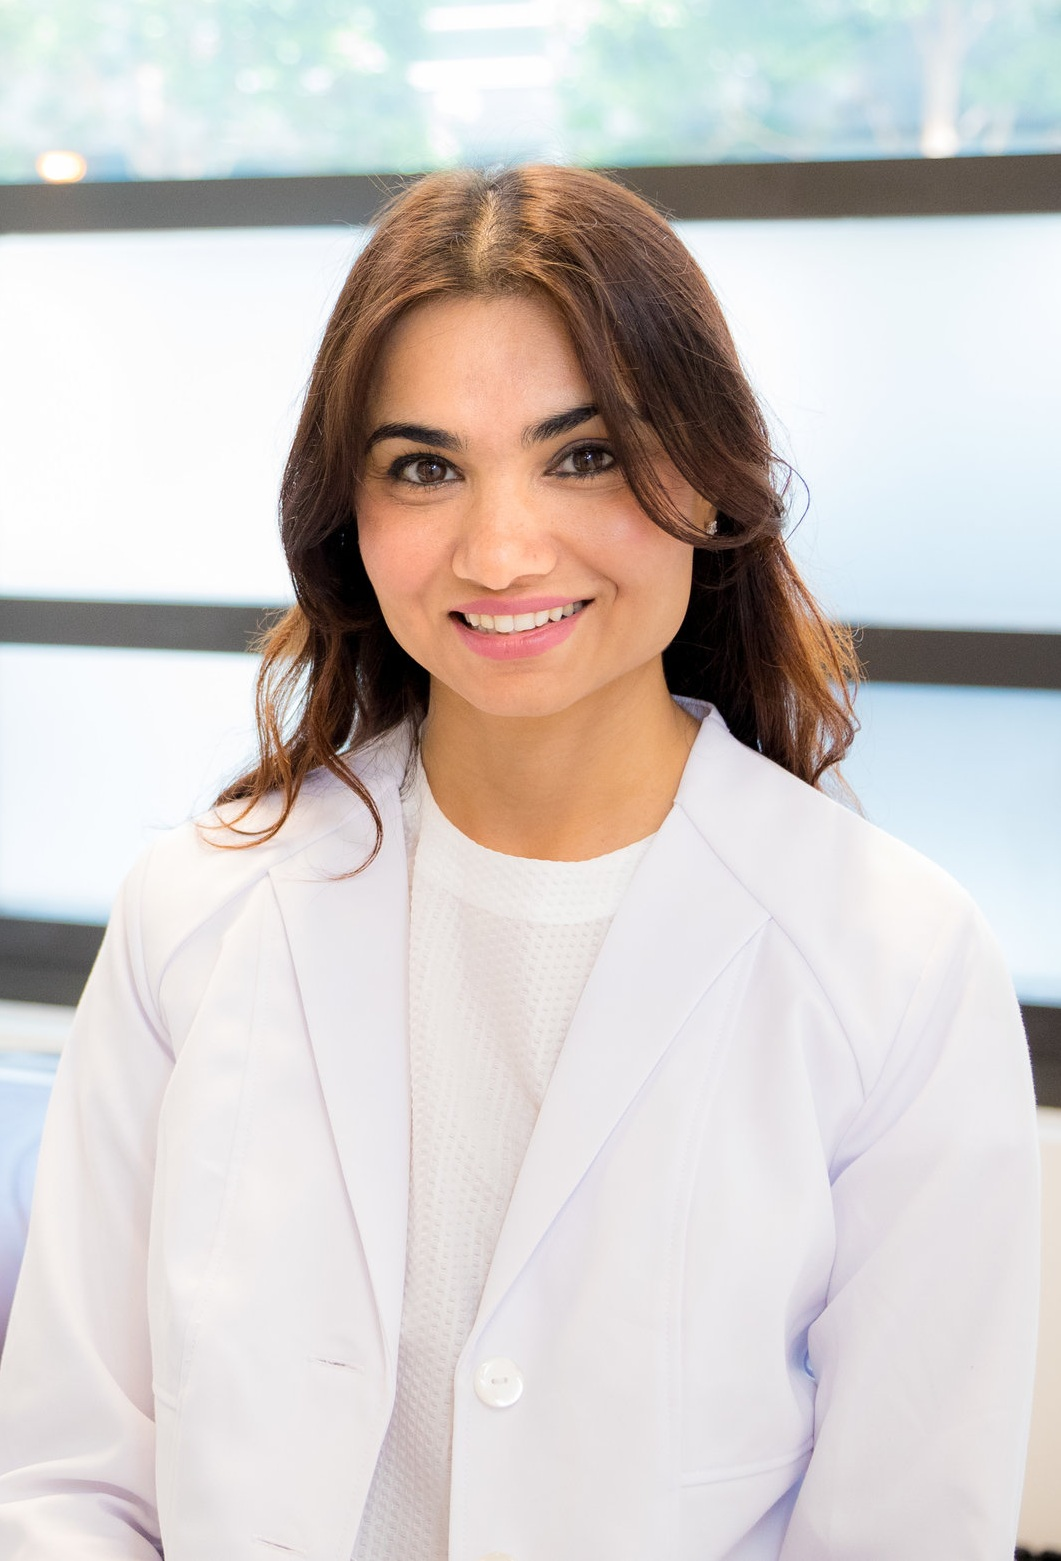 Srijana PokhrelDentist - Dr. Pokhrel graduated from the New York University College of Dentistry and is a member of the American Dental Association, the California Dental Association, and the San Francisco Dental Society.Dr. Pokhrel is a big believer in continuous learning and completes over 100 hours of additional training each year, perfecting her skills and incorporating the latest developments in dental medicine. She cares deeply about her patients and goes above and beyond to provide them with the best care possible.Dr. Pokhrel cares for your soul as much as your smile, because she believes the two are fundamentally interwoven. Her joint passions for dentistry and mindfulness inspire her treatment philosophy, and she believes in crafting unique smiles that are able to tell their own stories.